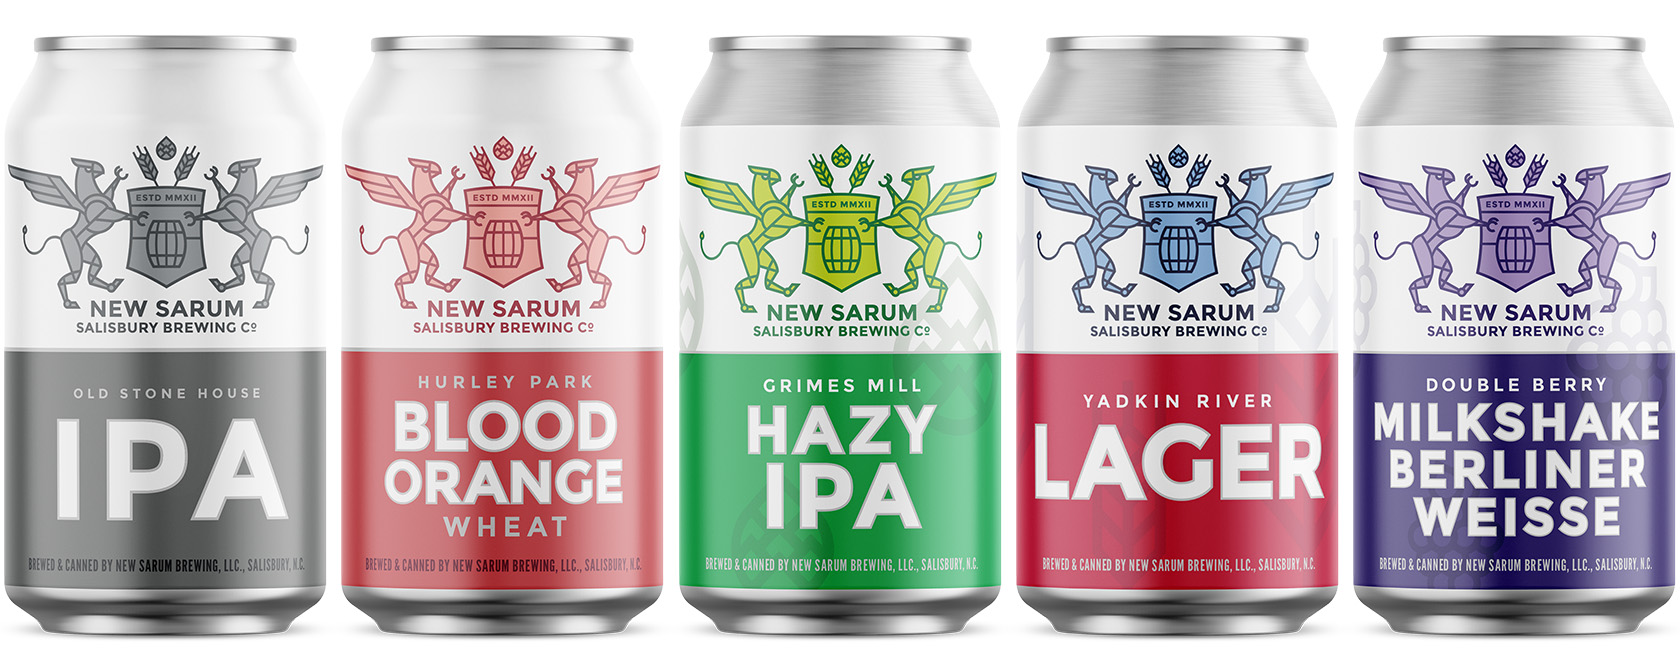 New Sarum Flagship cans